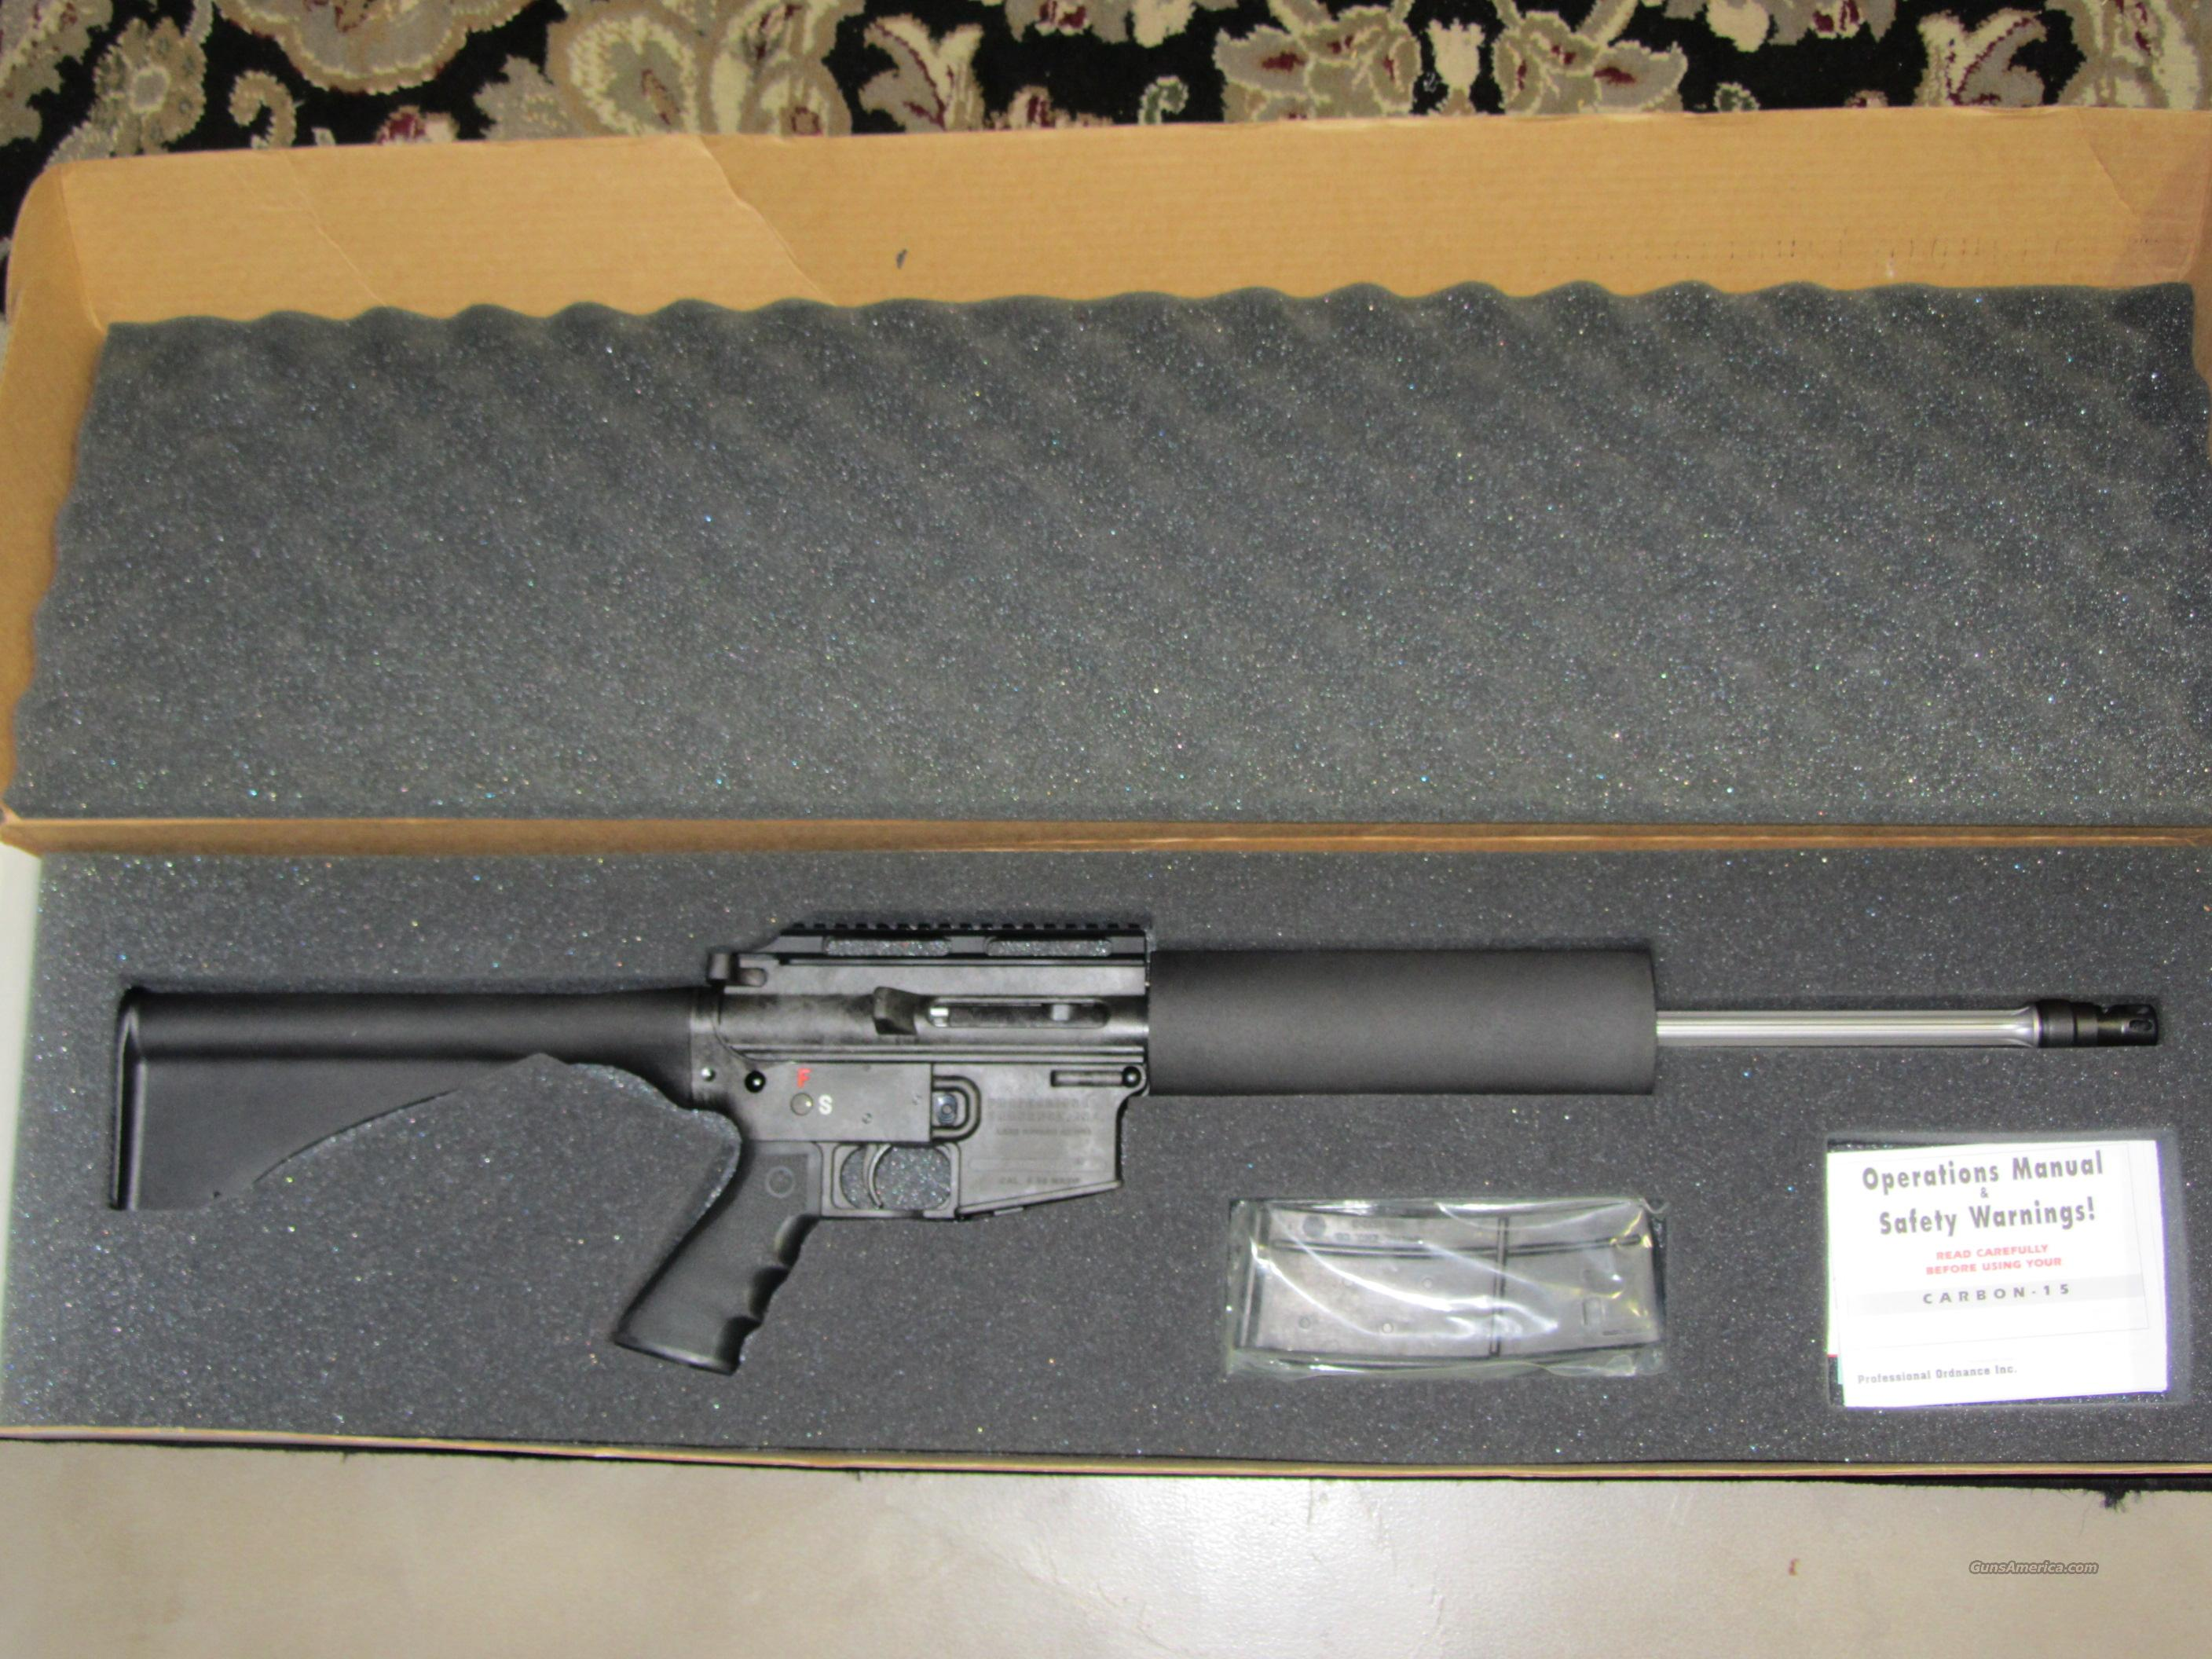 Professional Ordnance CARBON-15 AR  Guns > Rifles > Professional Ordnance Rifles